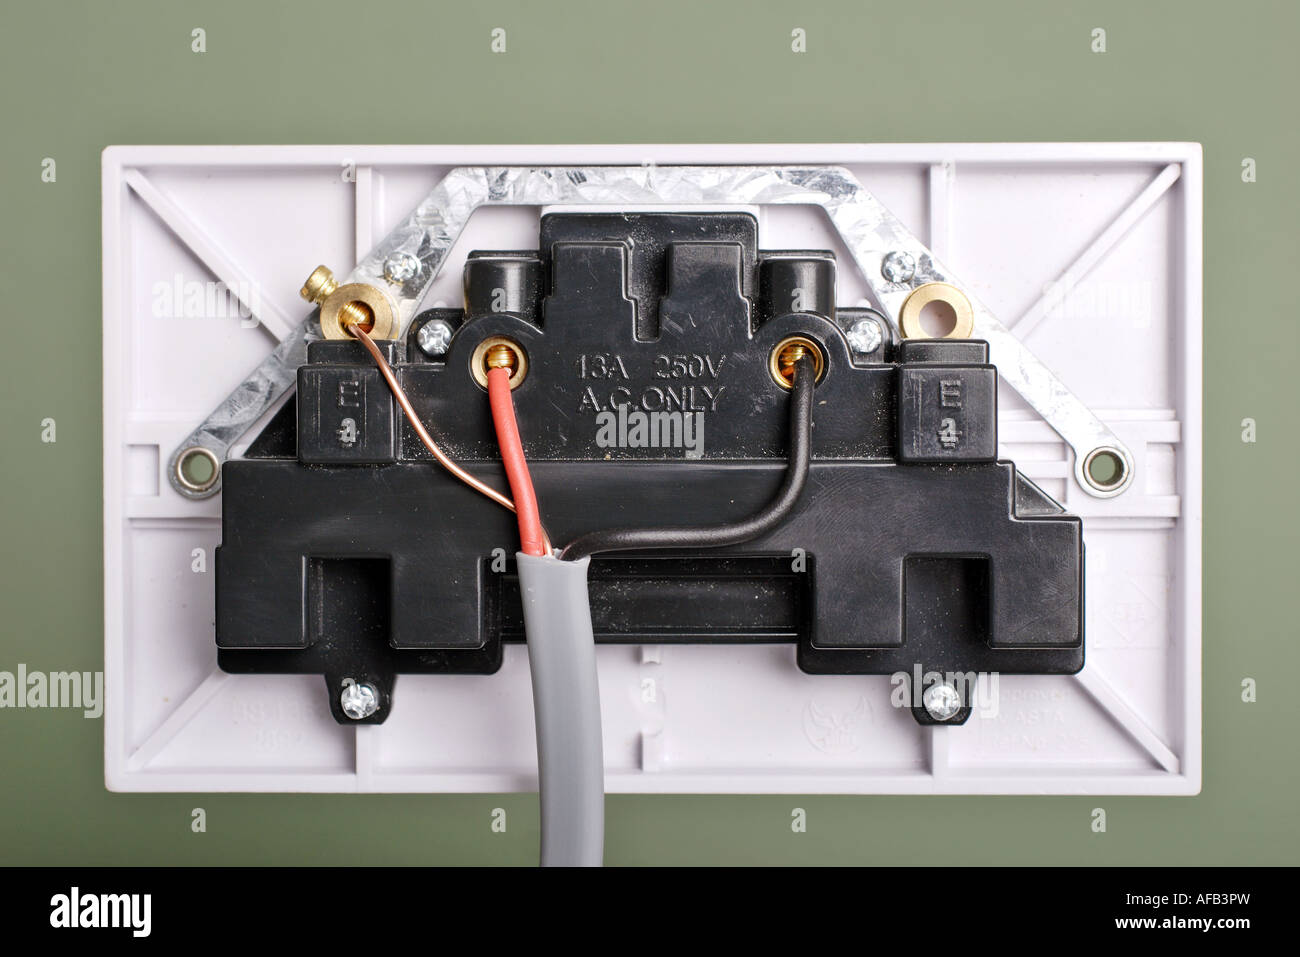 hight resolution of rear view of 3 pin electrical socket wiring